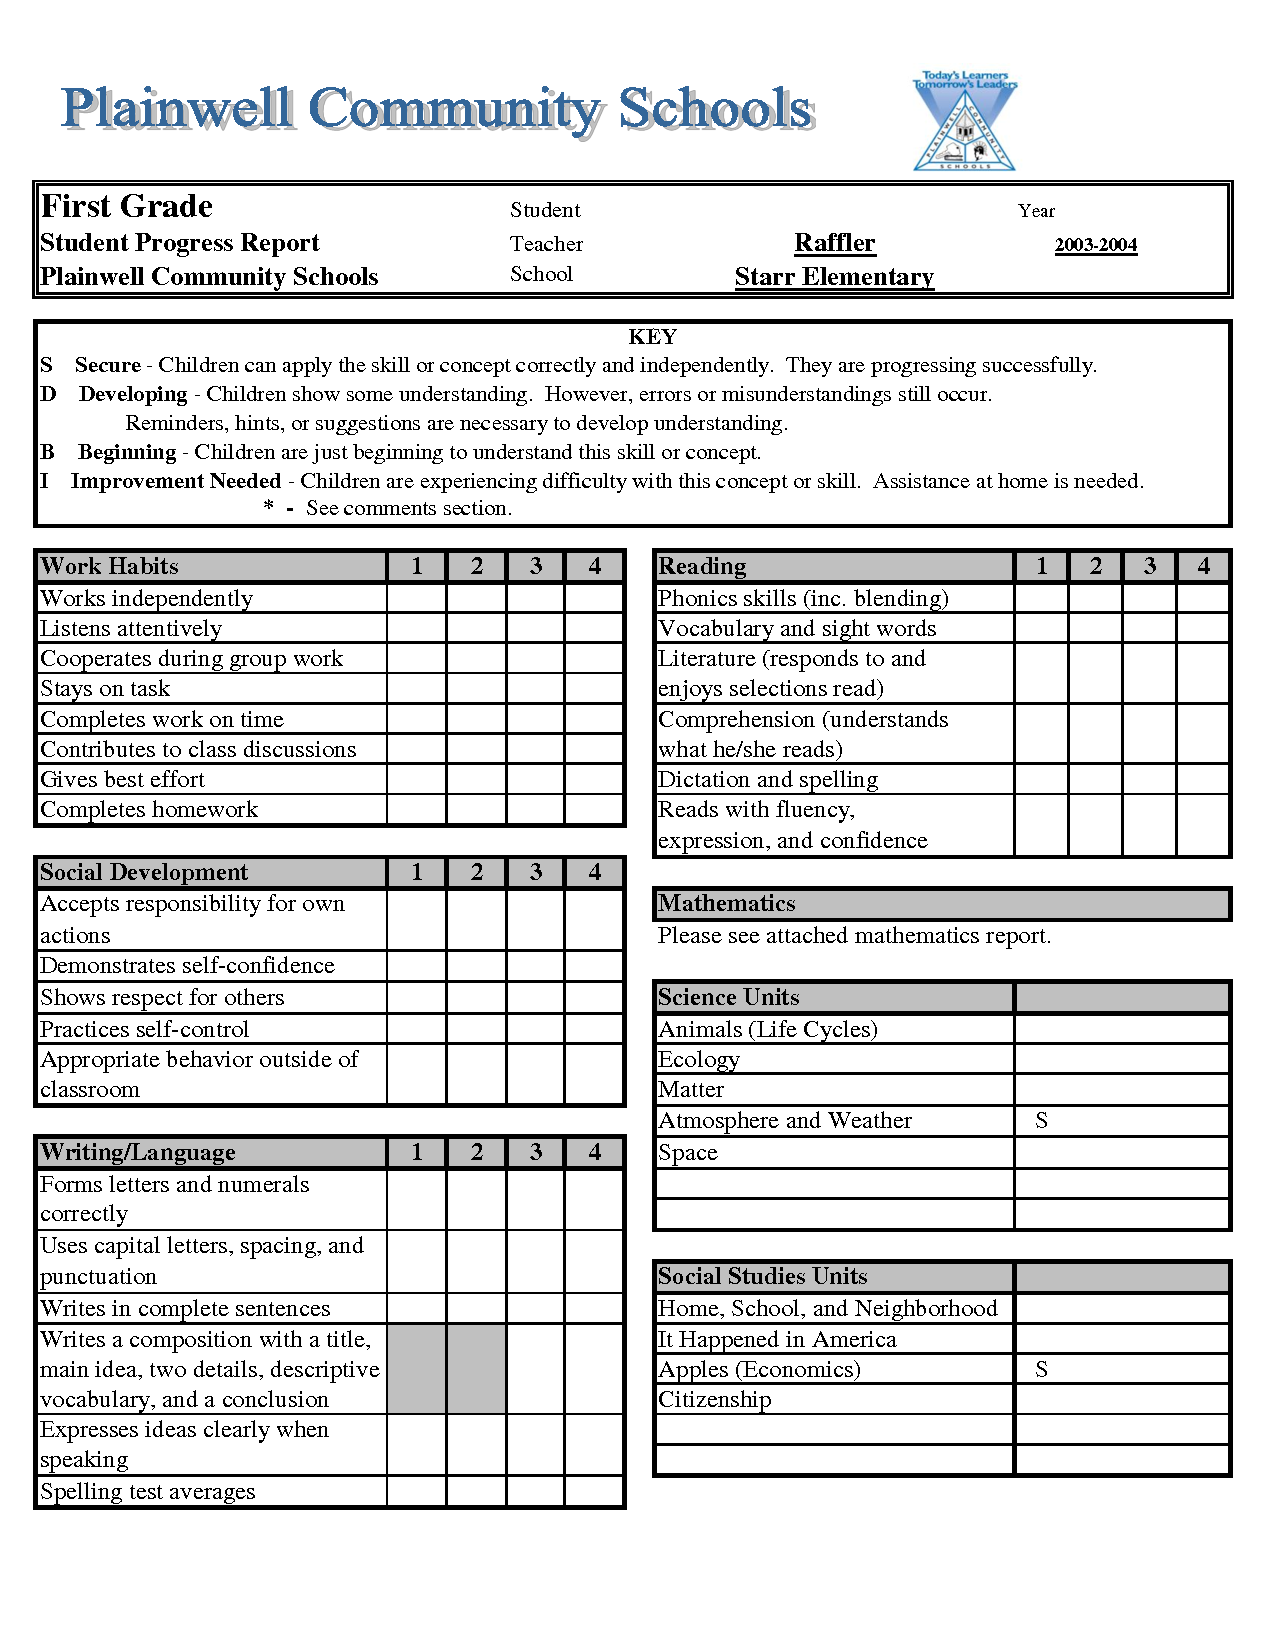 Report card template excelxls download legal documents report report card template excelxls download legal documents report card template document sample thecheapjerseys Choice Image